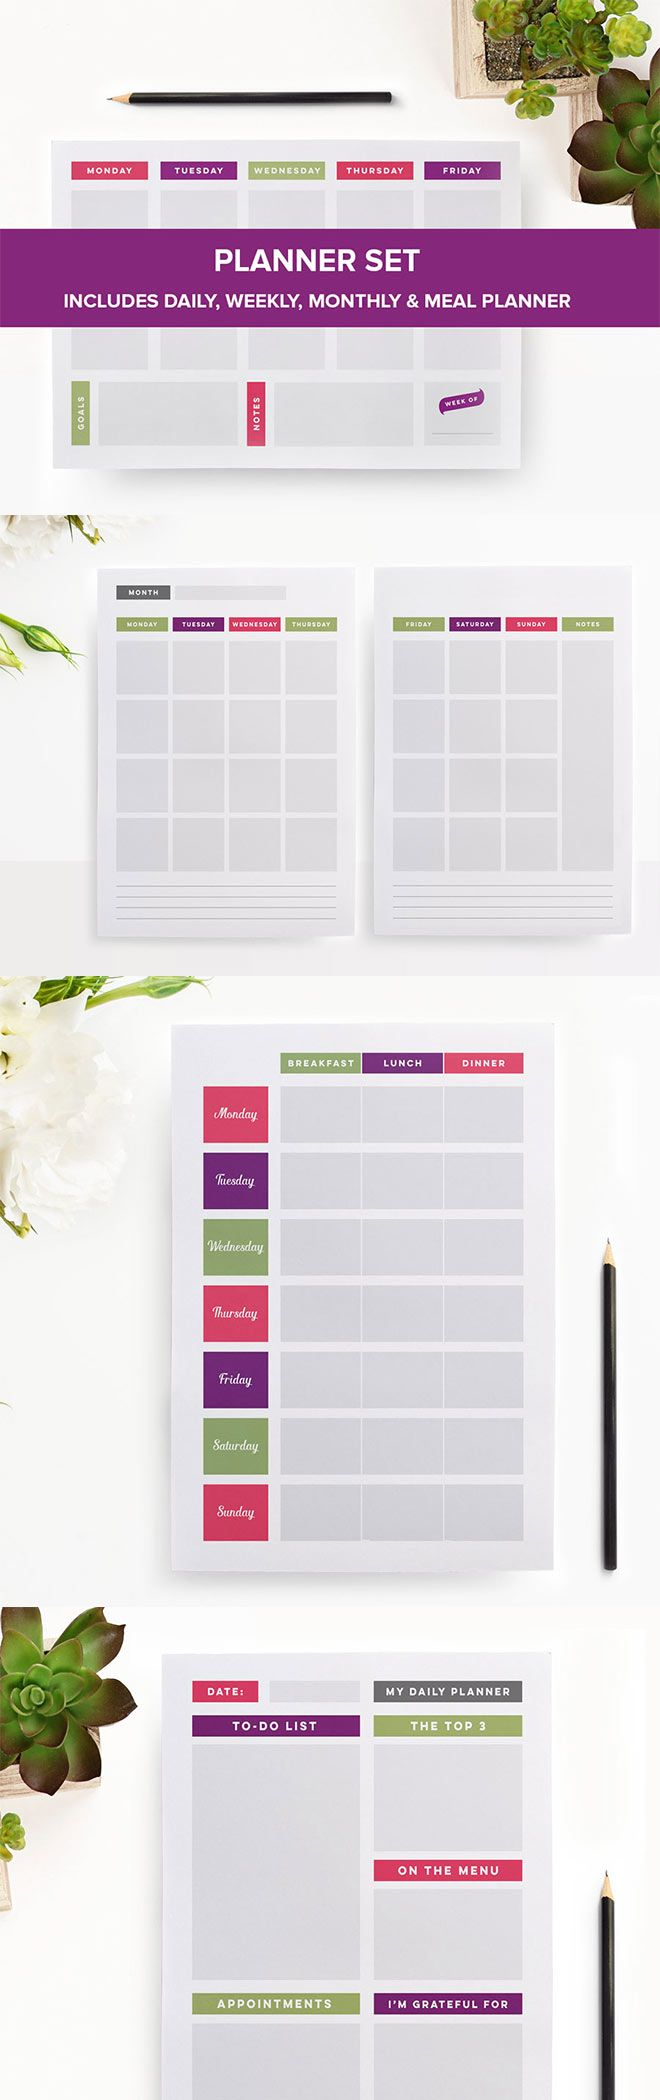 Get organised with this printable planner set, including: meal planner, daily planner, weekly planner, and monthly planner